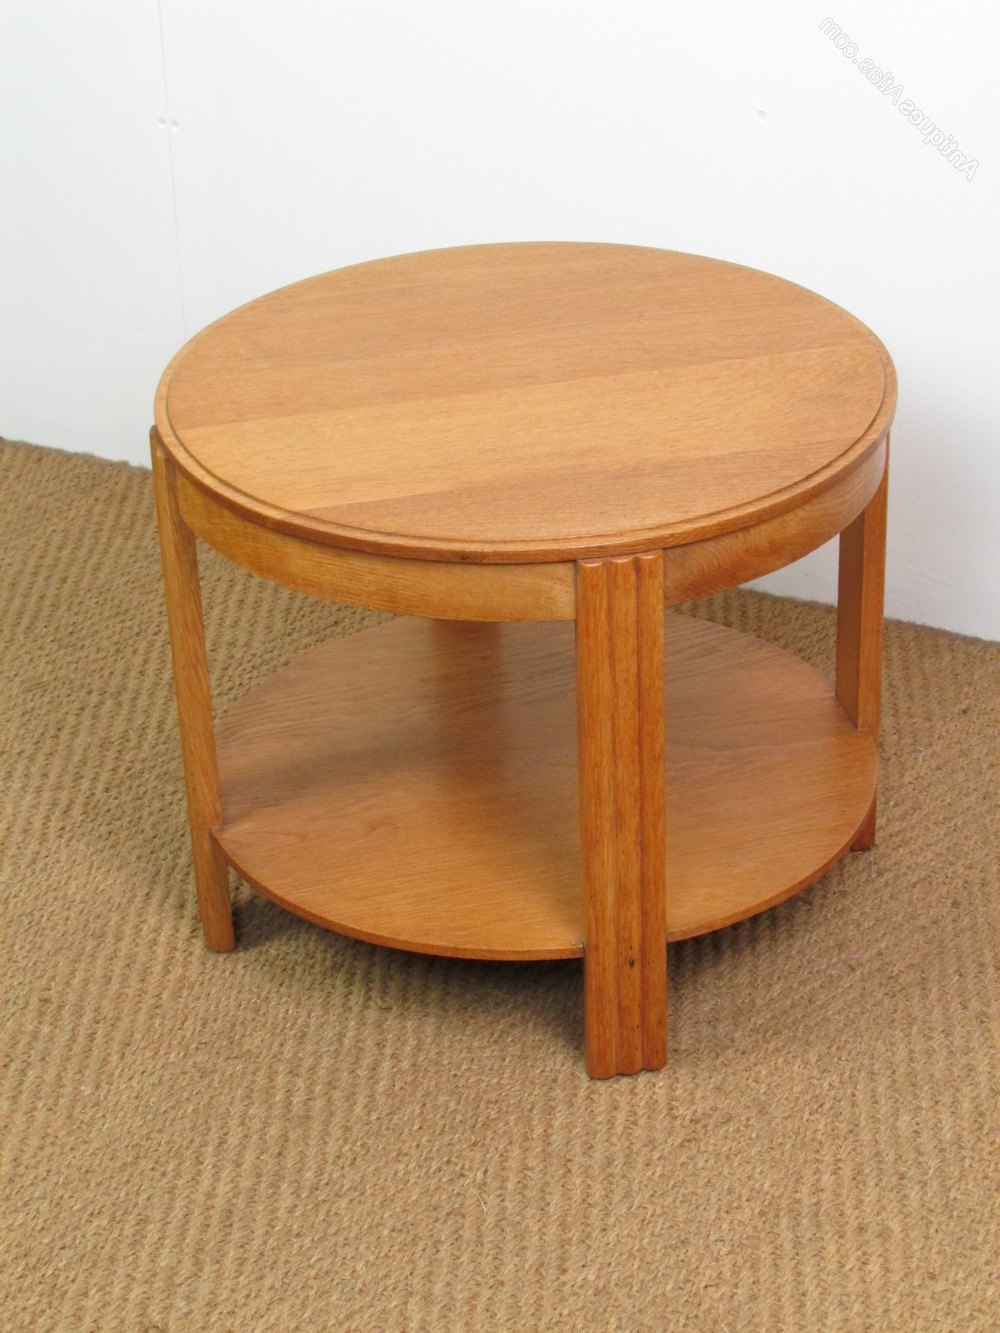 Antiqued Art Deco Coffee Tables Throughout Newest Art Deco Oak Coffee / Side Table – Antiques Atlas (Gallery 1 of 20)